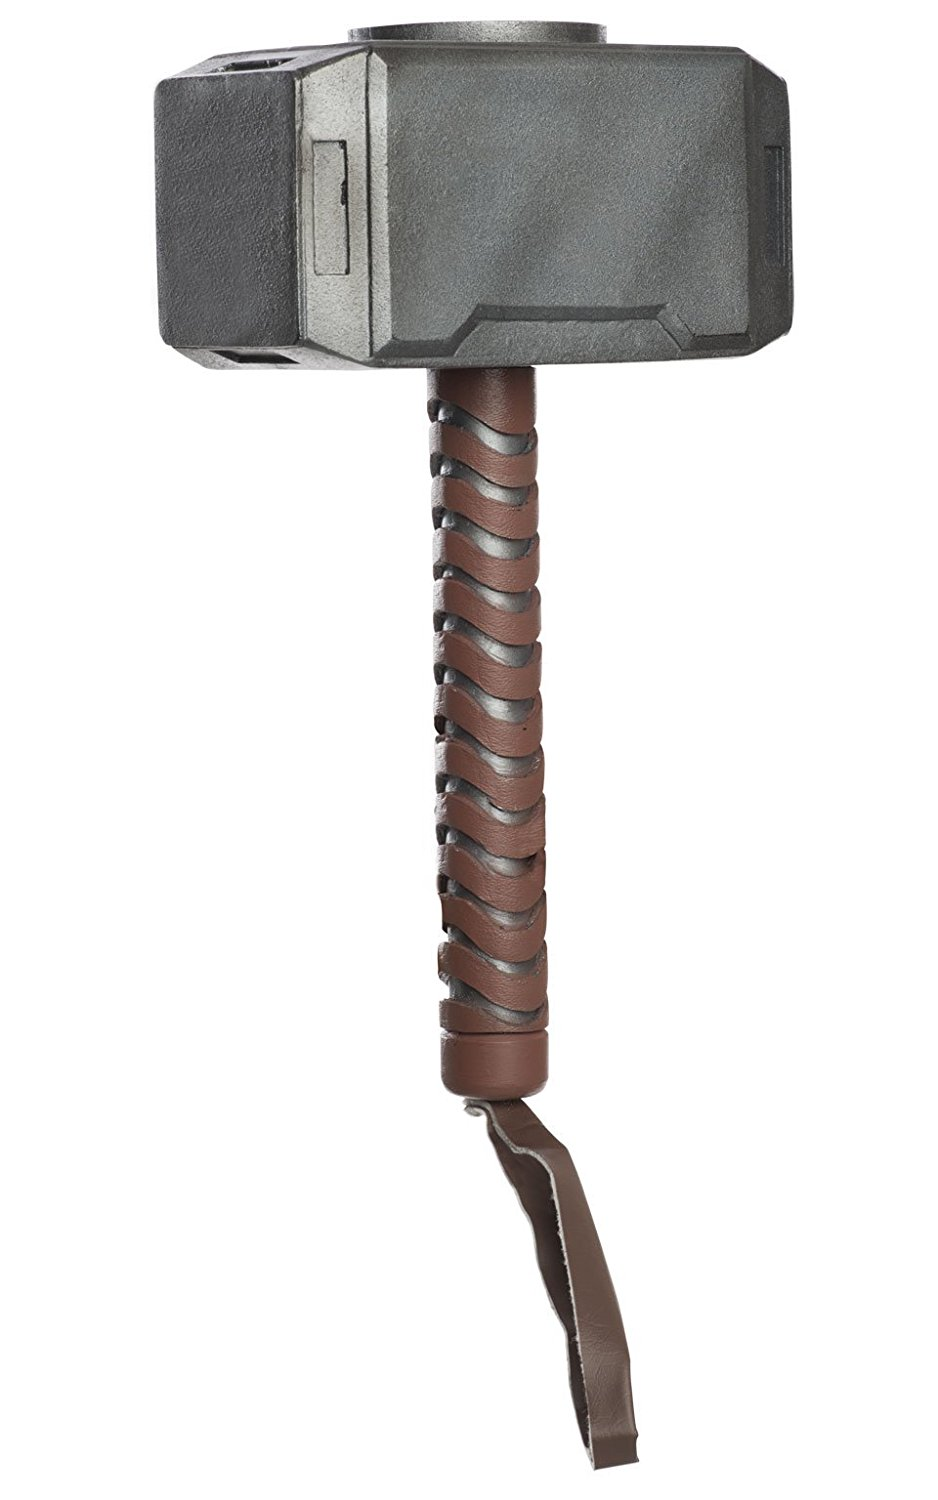 Thor Hammer from Amazon